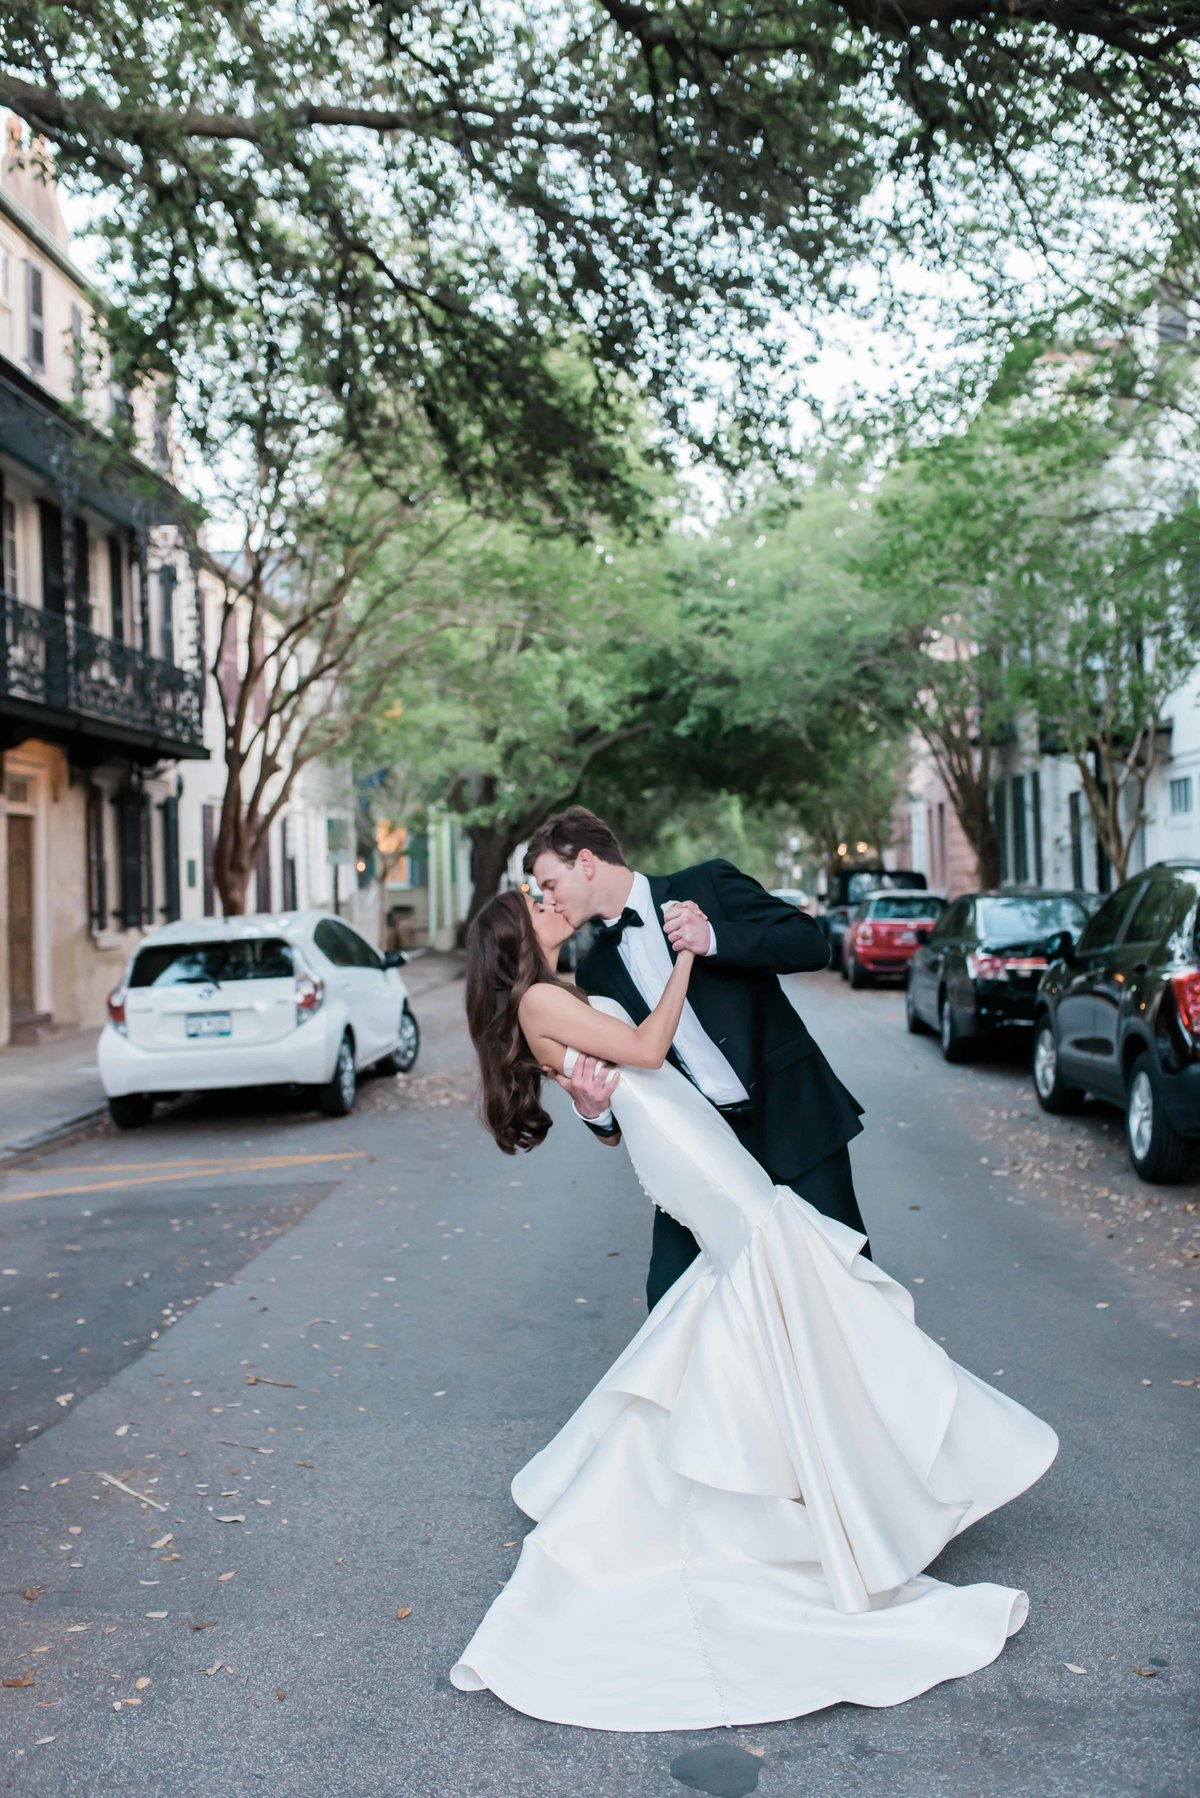 Bride and groom do a dip in the middle of the street in downtown Charleston, SC